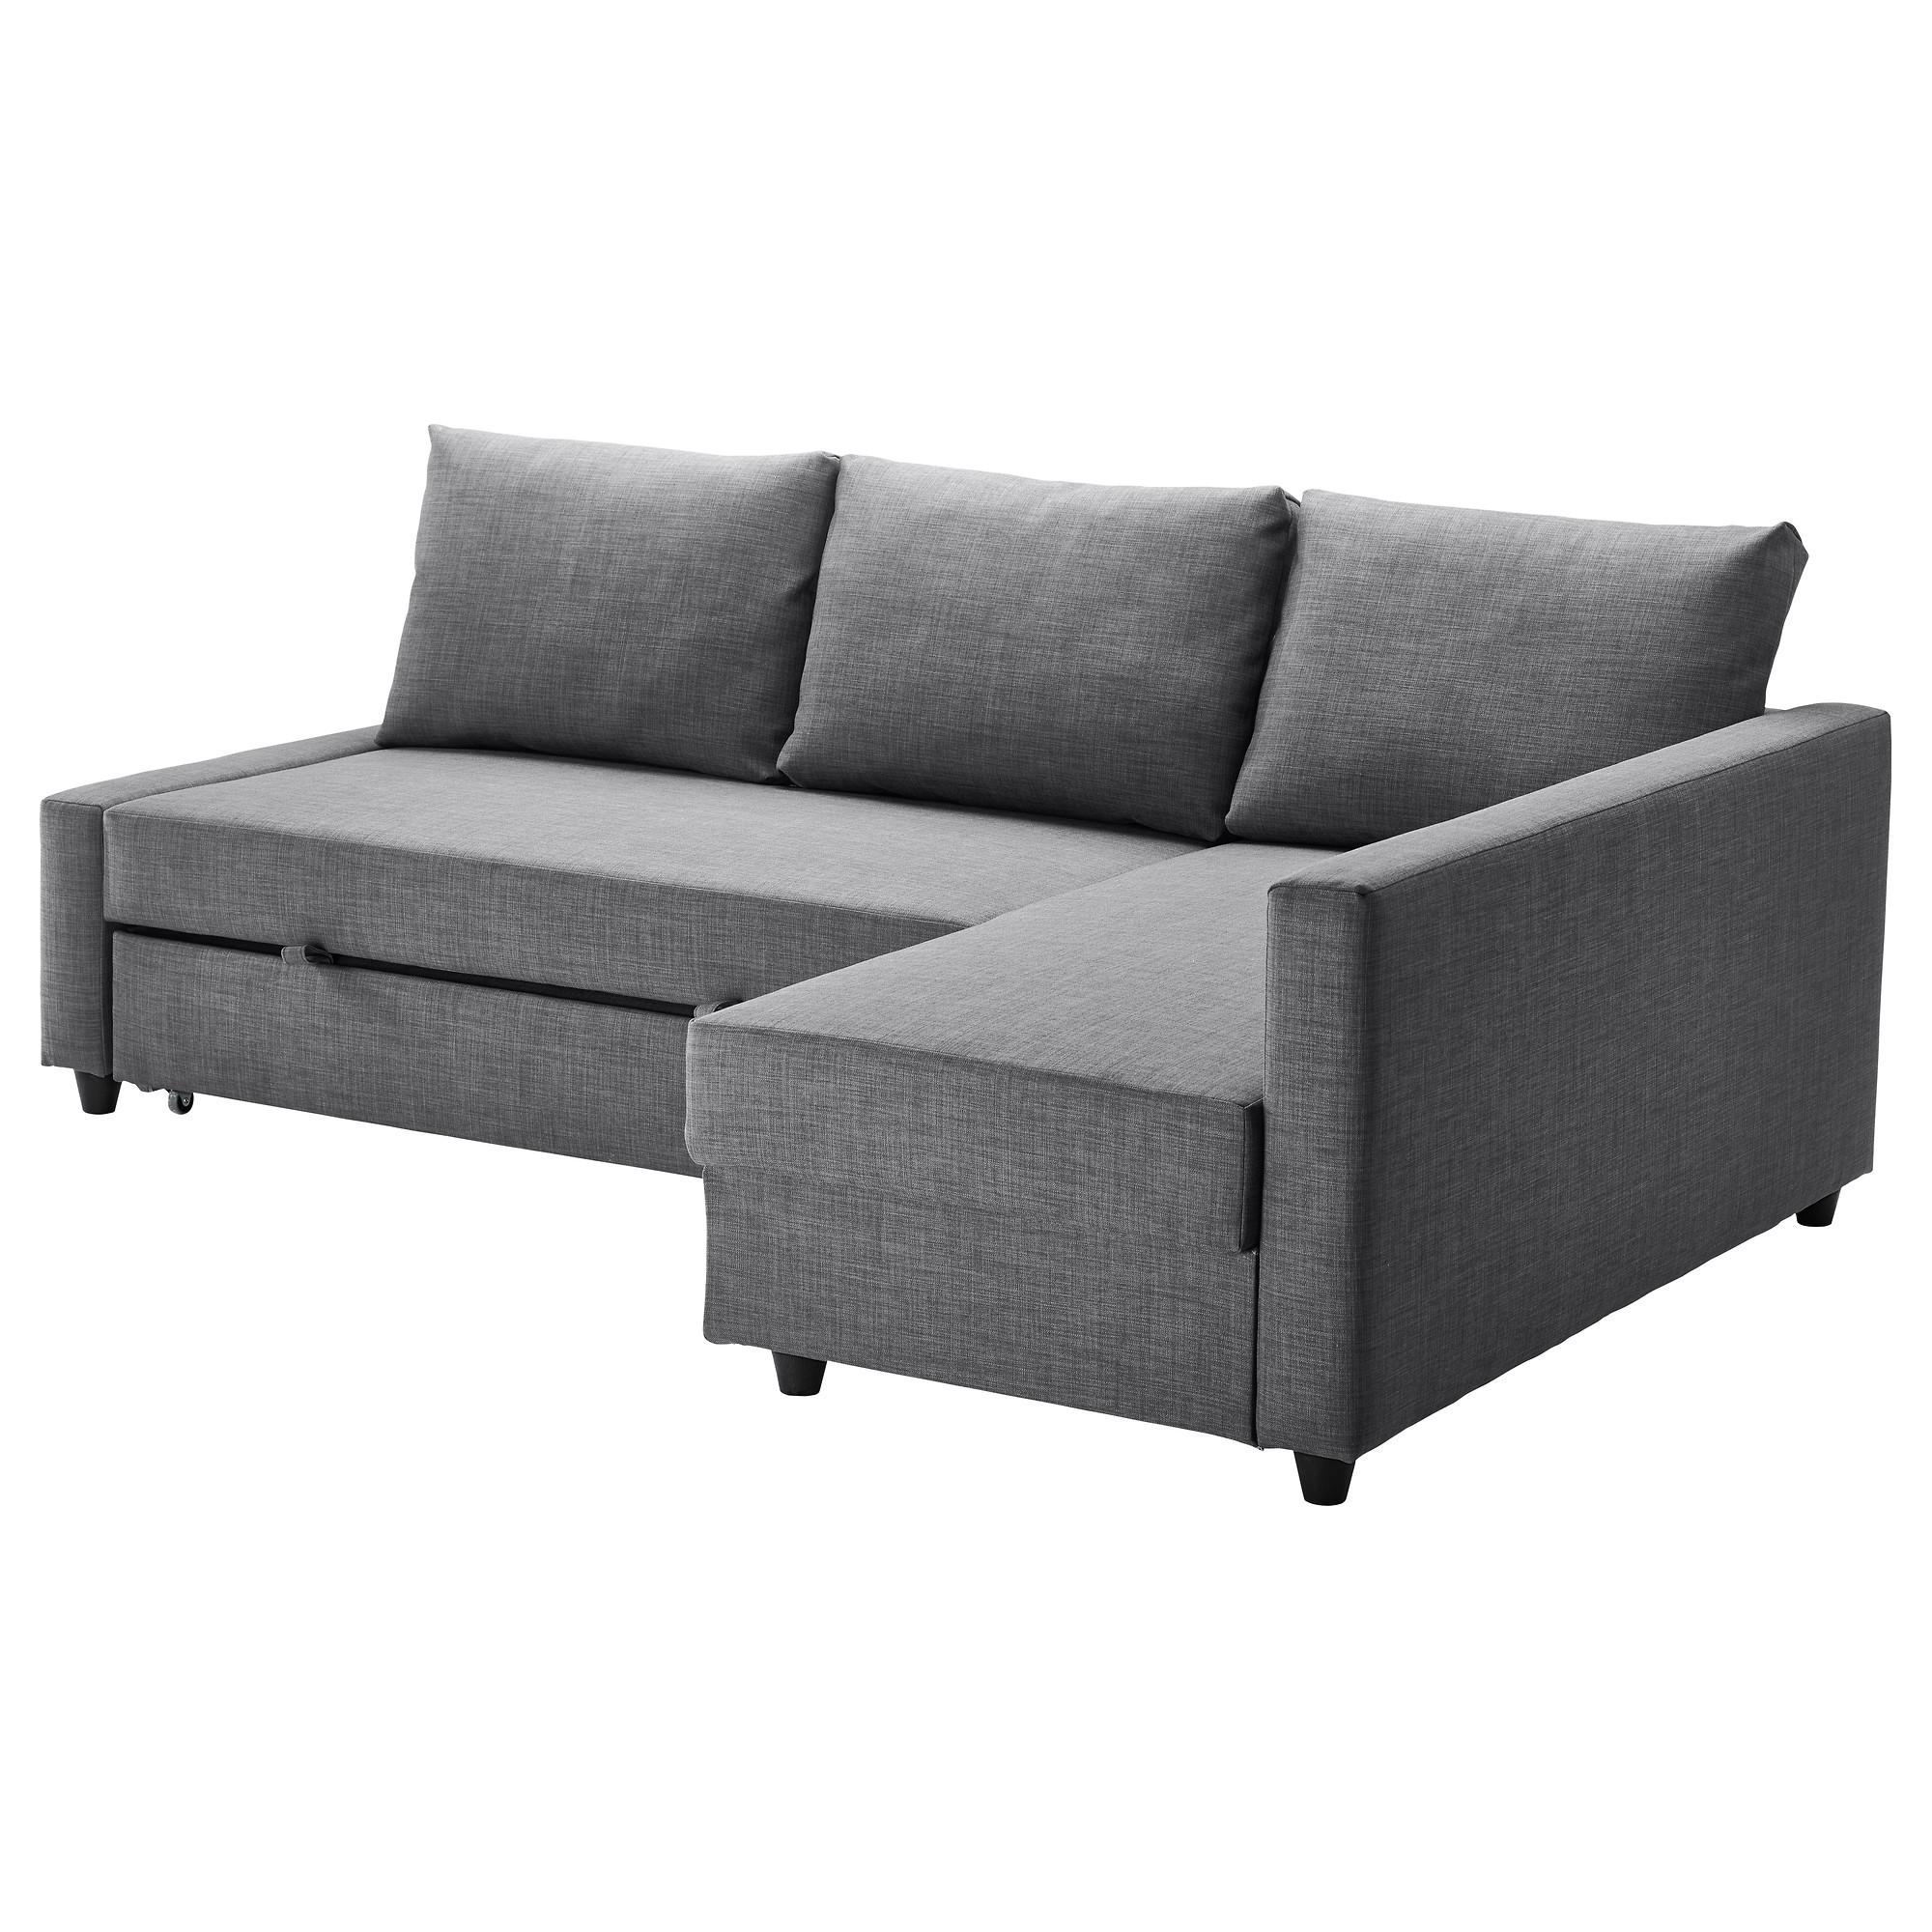 FRIHETEN Sleeper Sectional,3 Seat W/storage